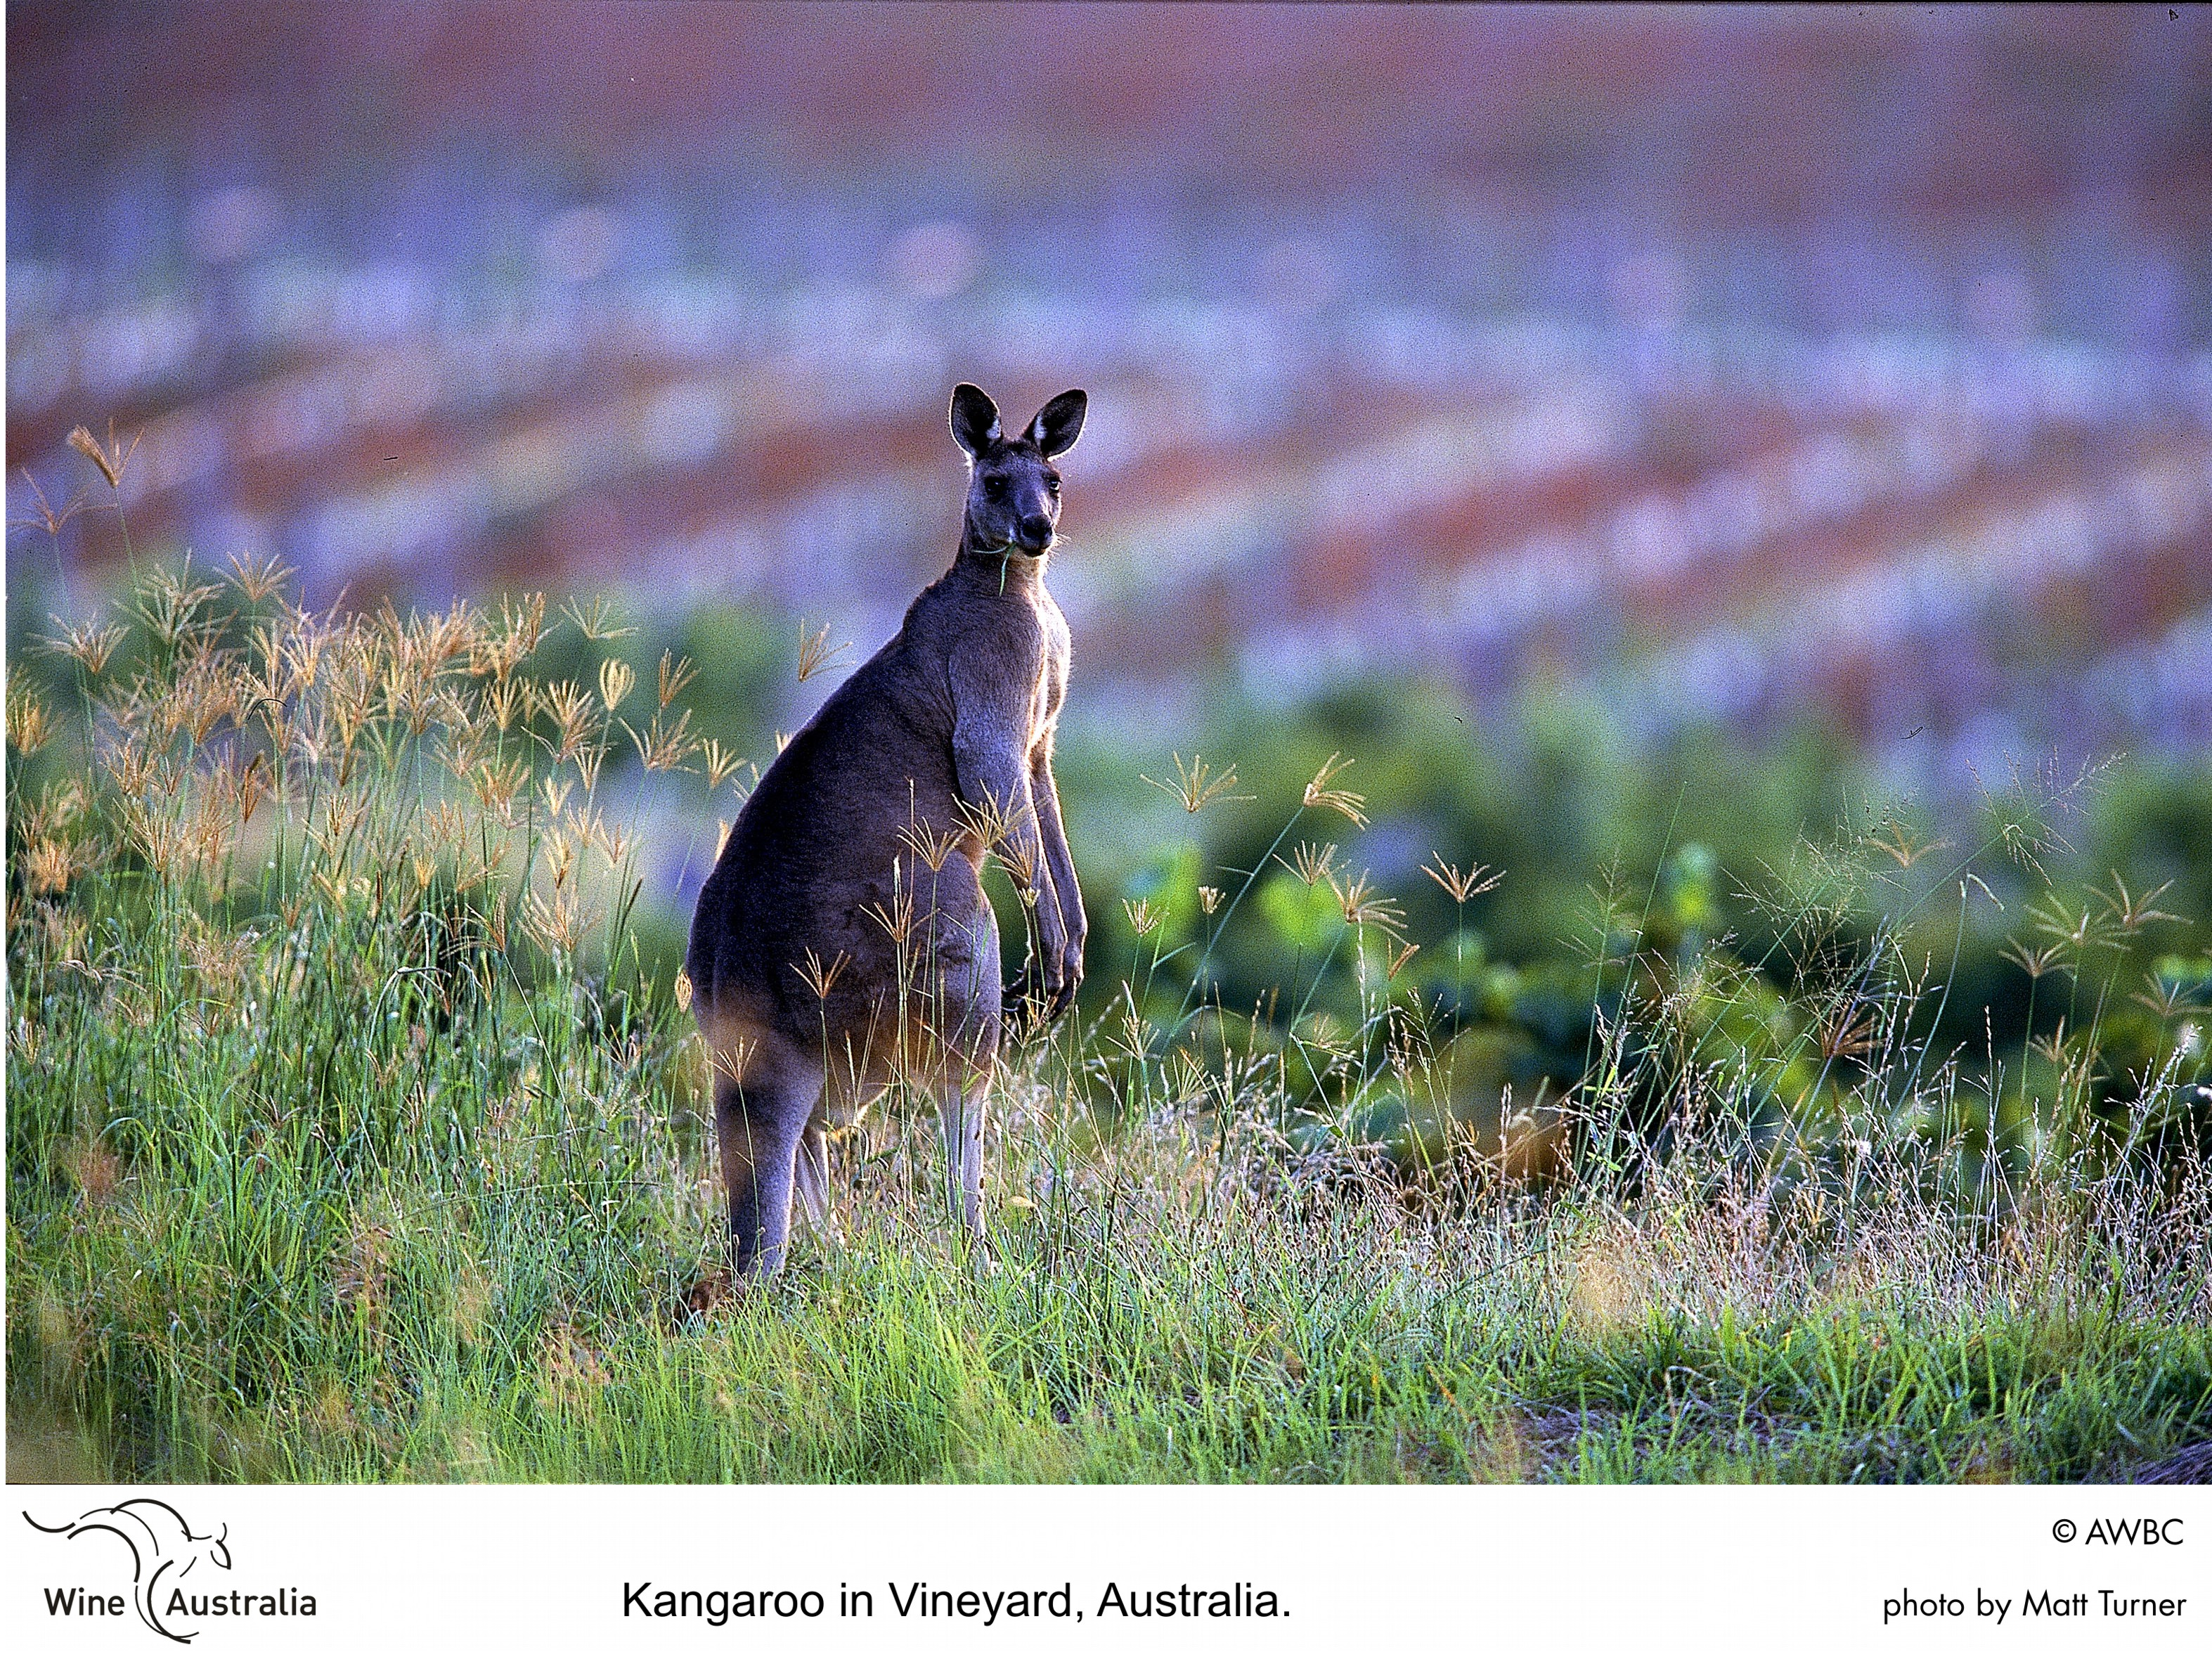 "australian wine industry The australian wine industry length: 3000 words ""the australian wine industry is facing one of its greatest challenges in living memory – to compete on a global stage with quality wines that are accessible to the mass market, without jeopardising the livelihoods of wine producers, the communities they serve or the environment upon which they rely."